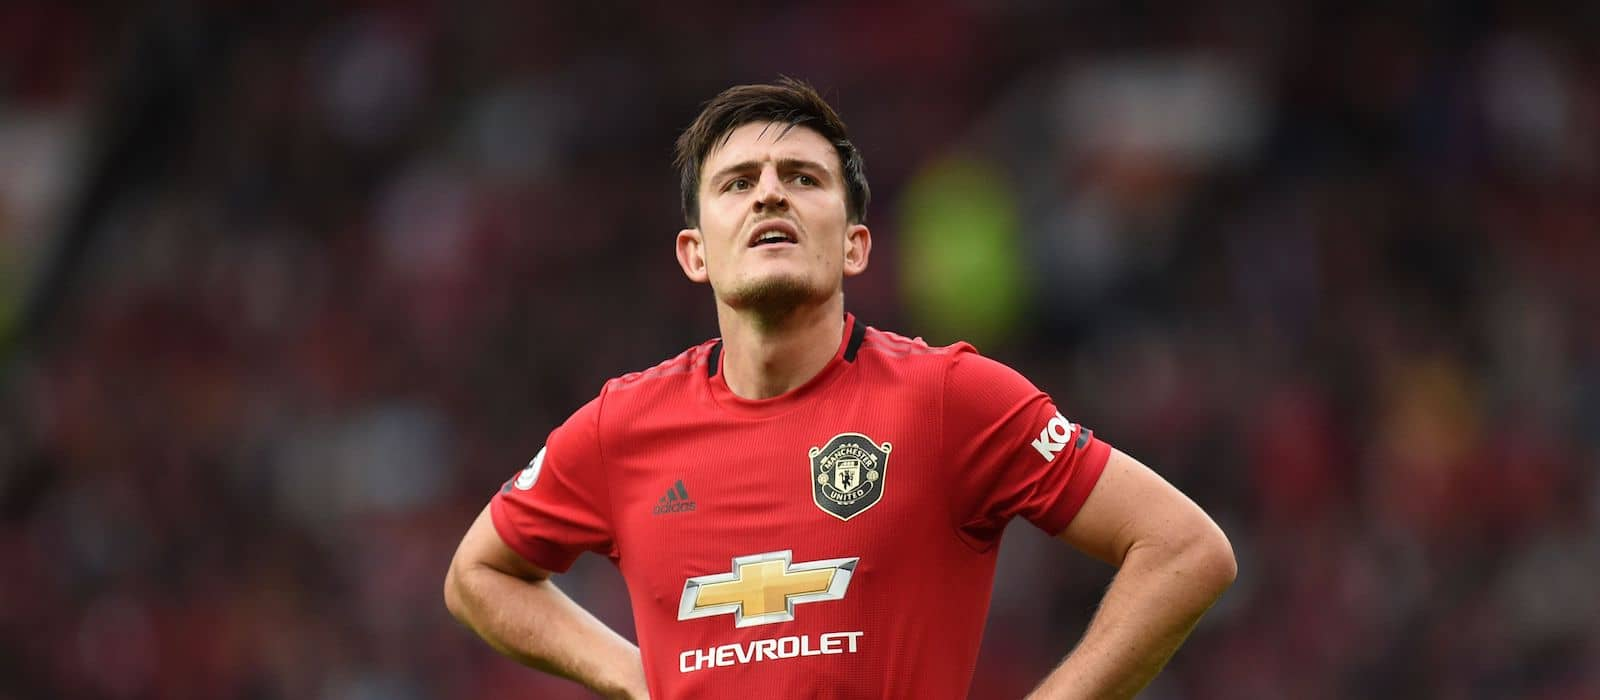 Roy Keane warns Manchester United over Harry Maguire's defending